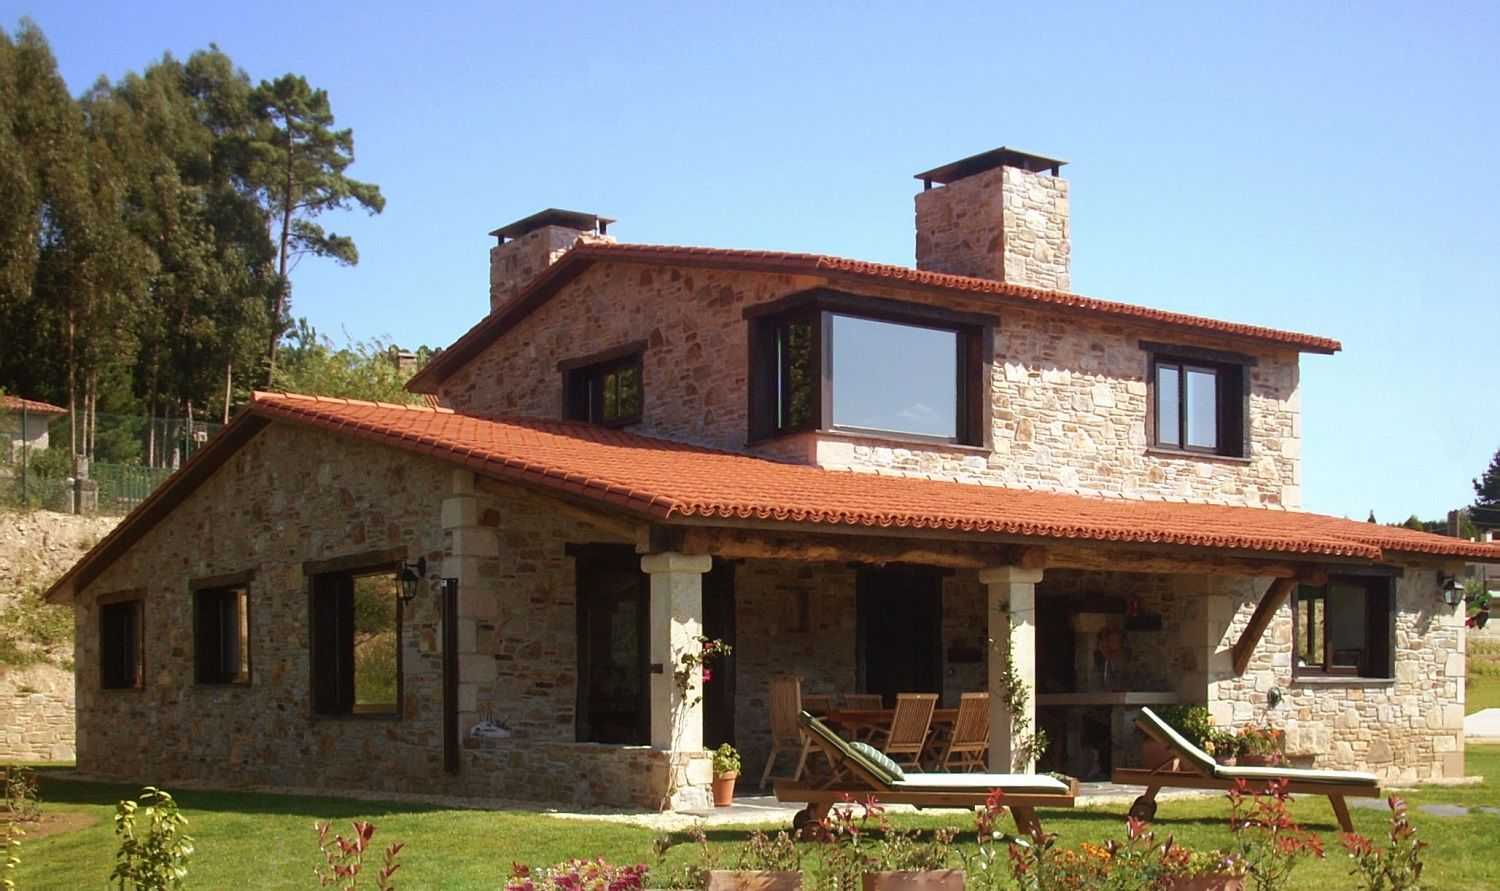 construcciones r sticas gallegas casas country house